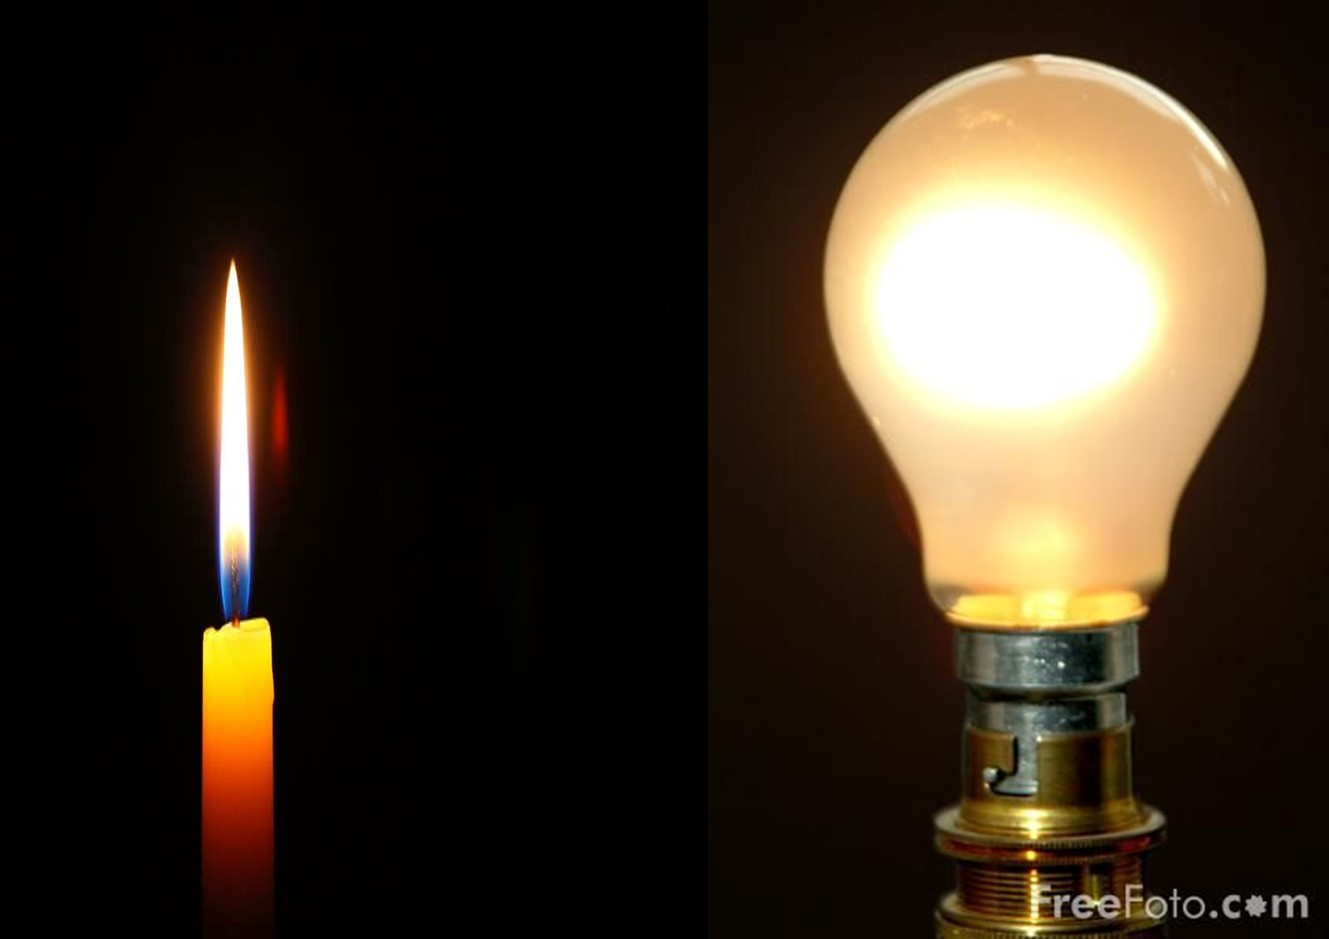 M bioserviceS | On Candles and Light Bulbs